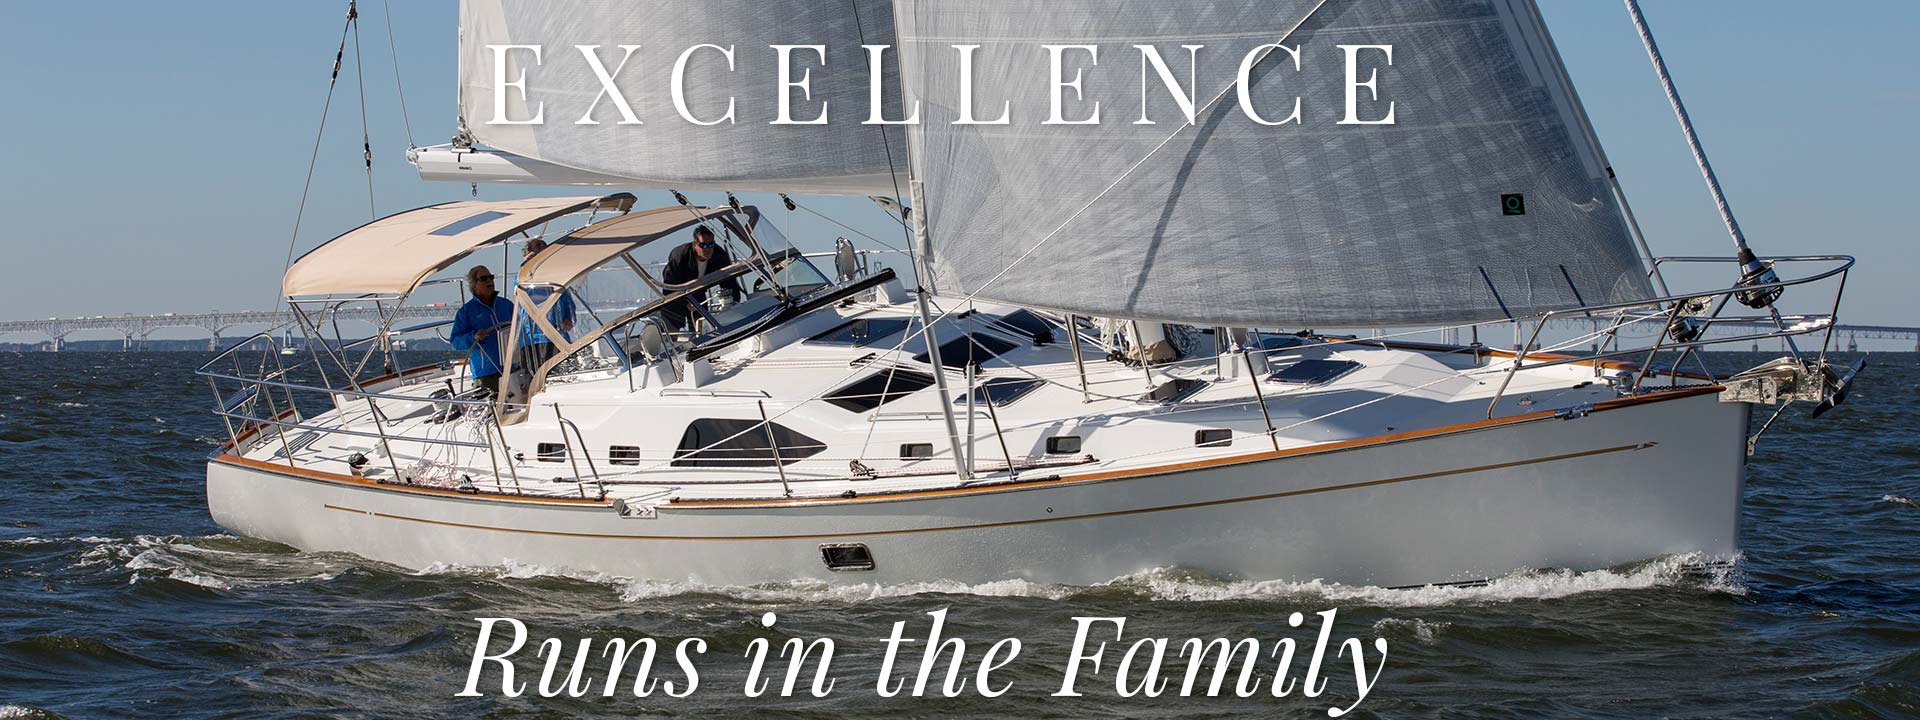 Excellence runs in the family. Passport Vista 545